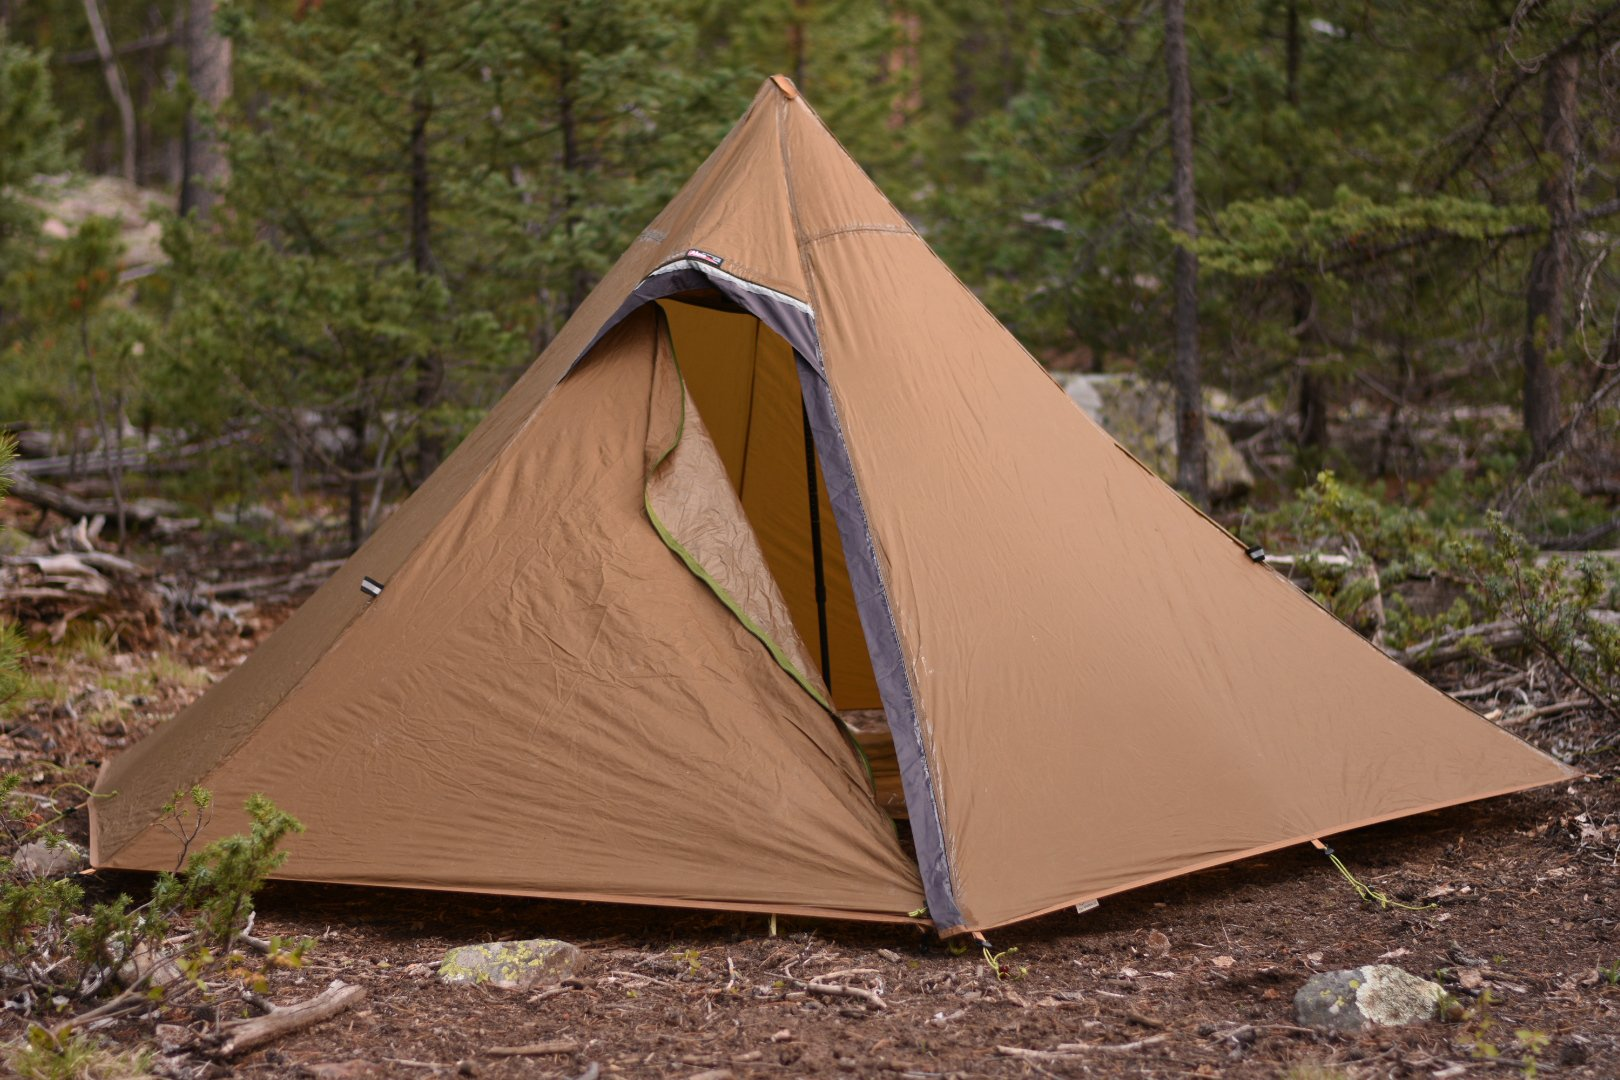 competitive price 48846 de44f Luxe Hexpeak review – AMPED ARCHER